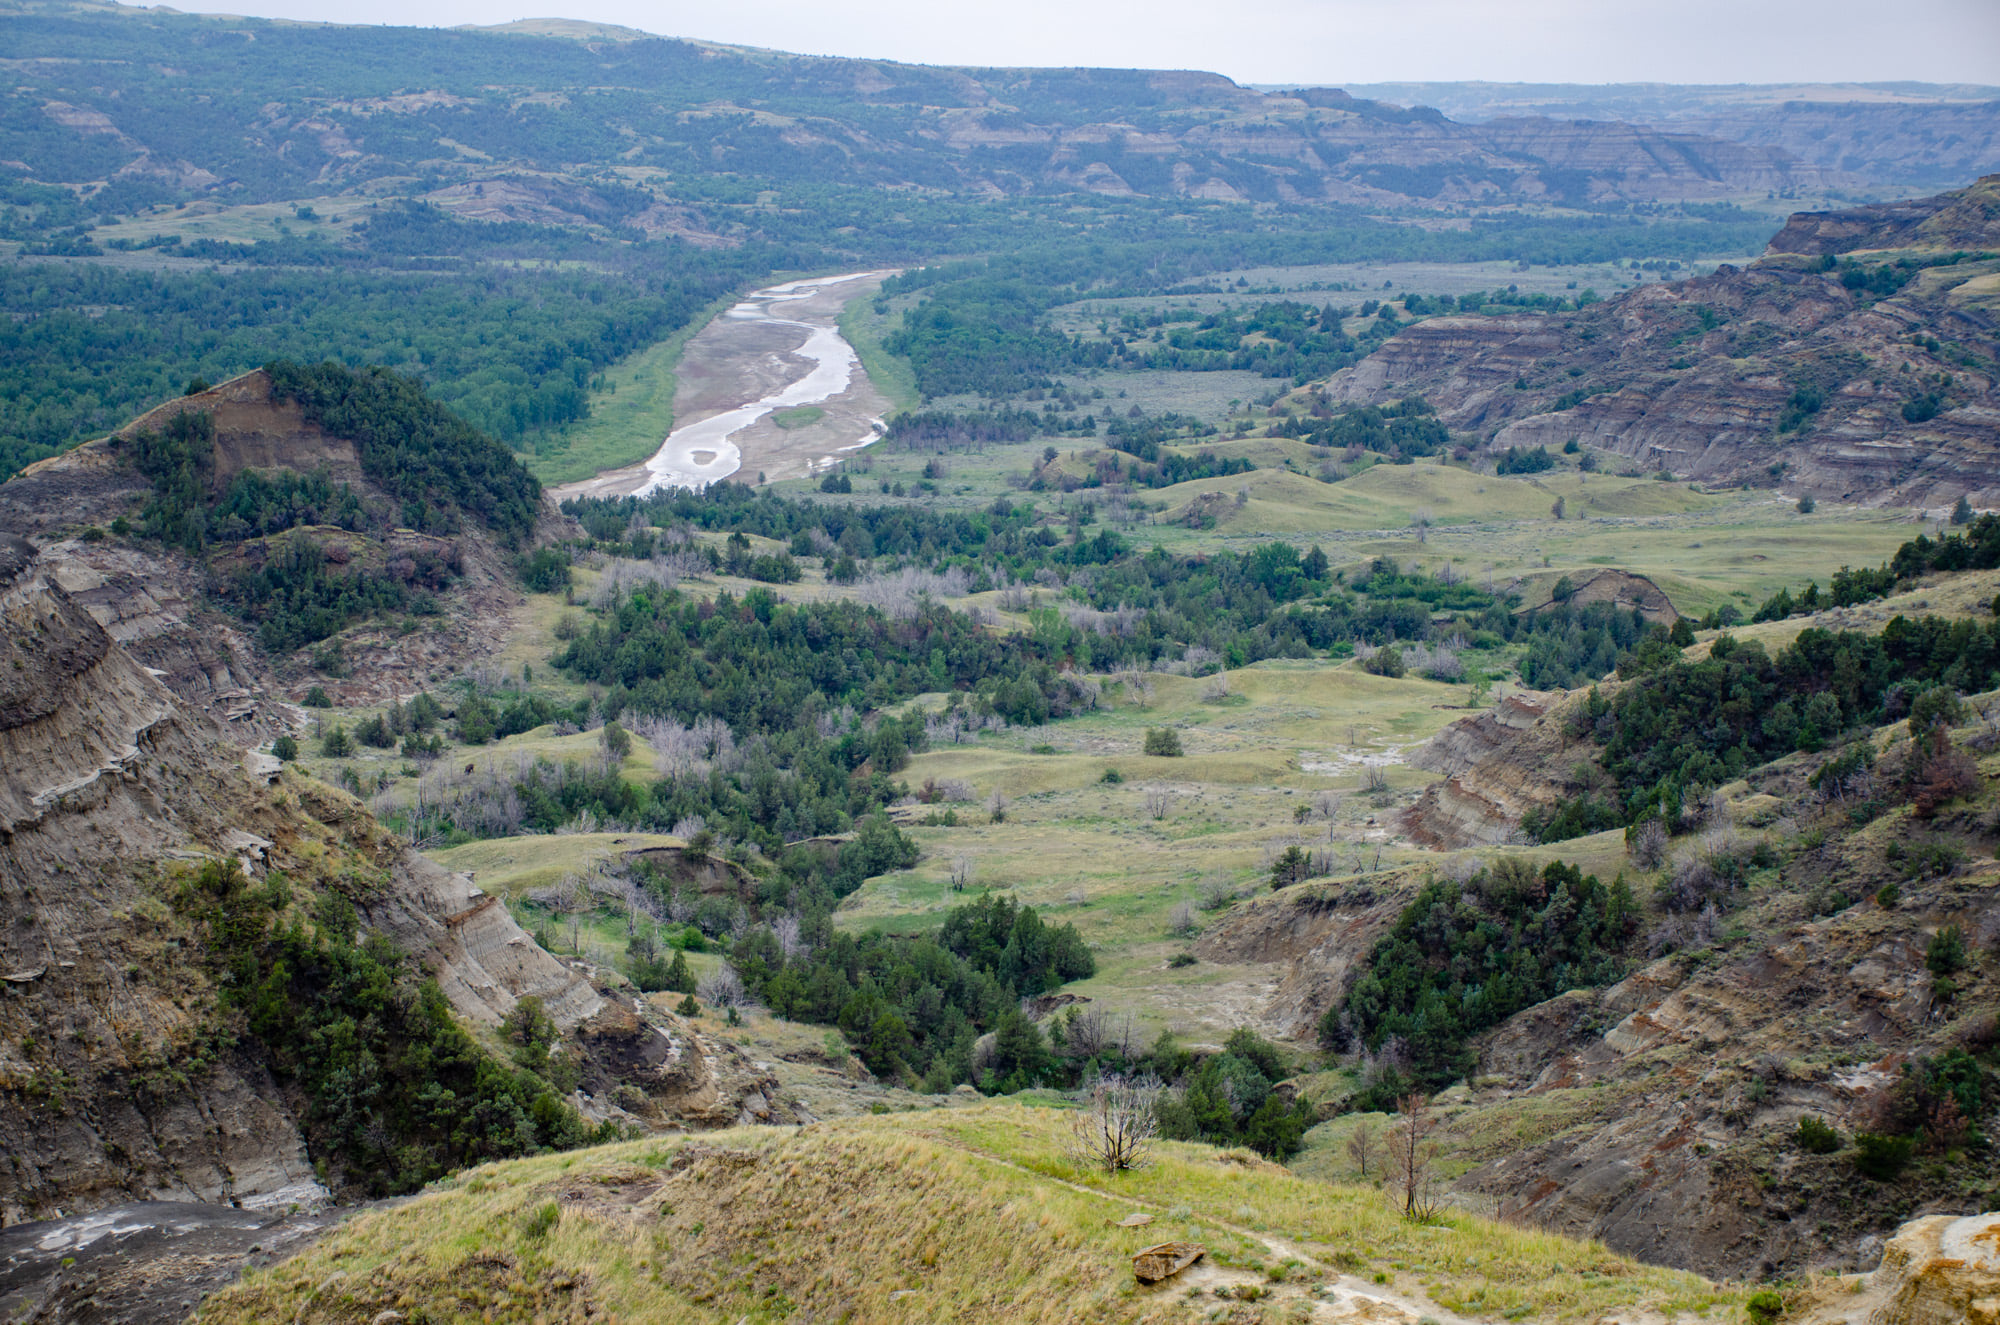 The river is shown at Theodore Roosevelt National Park